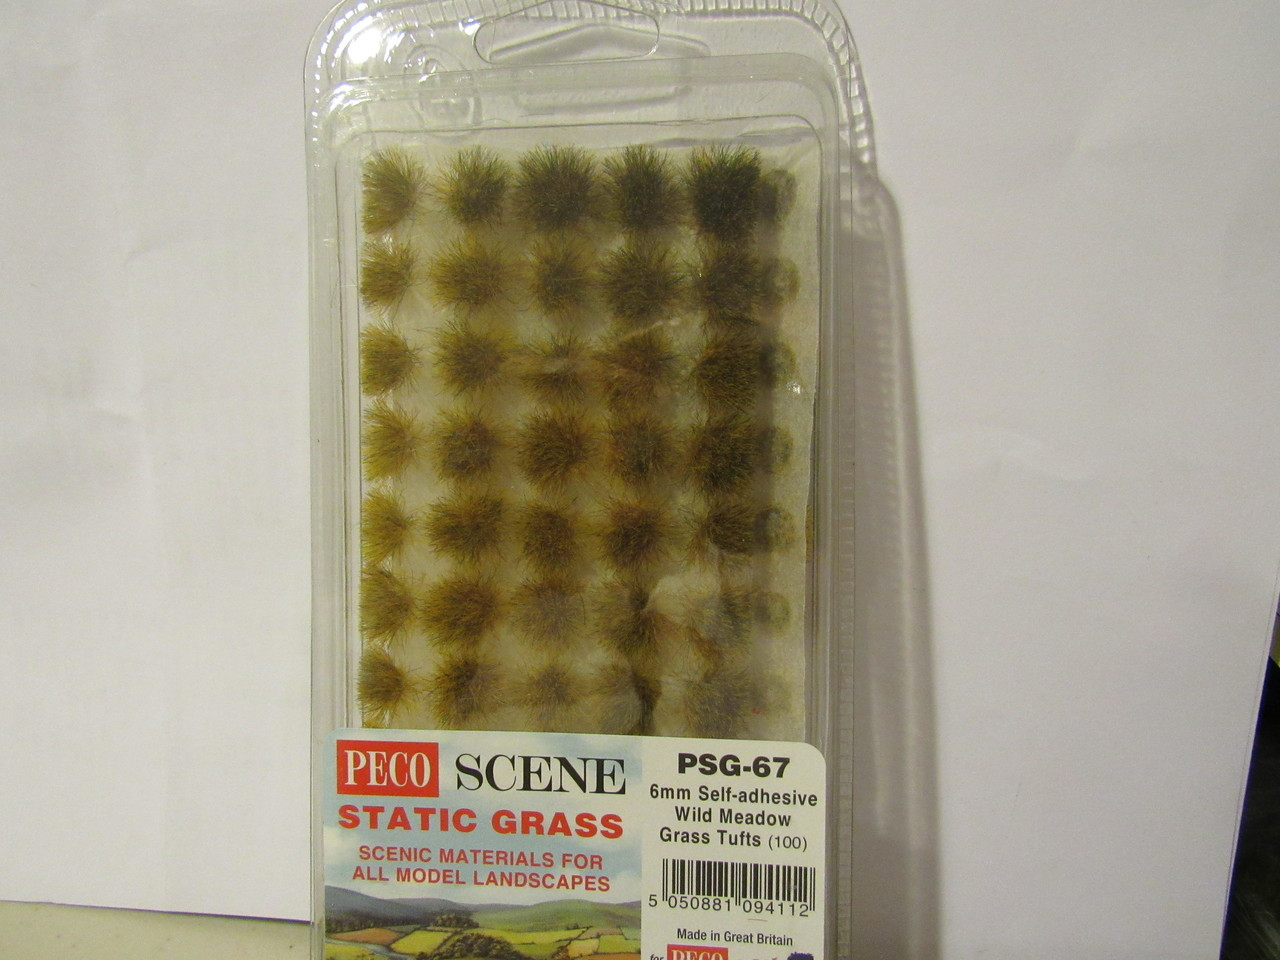 Peco Scene Static Grass Wild Meadow Grass Tufts (100g) 6mm